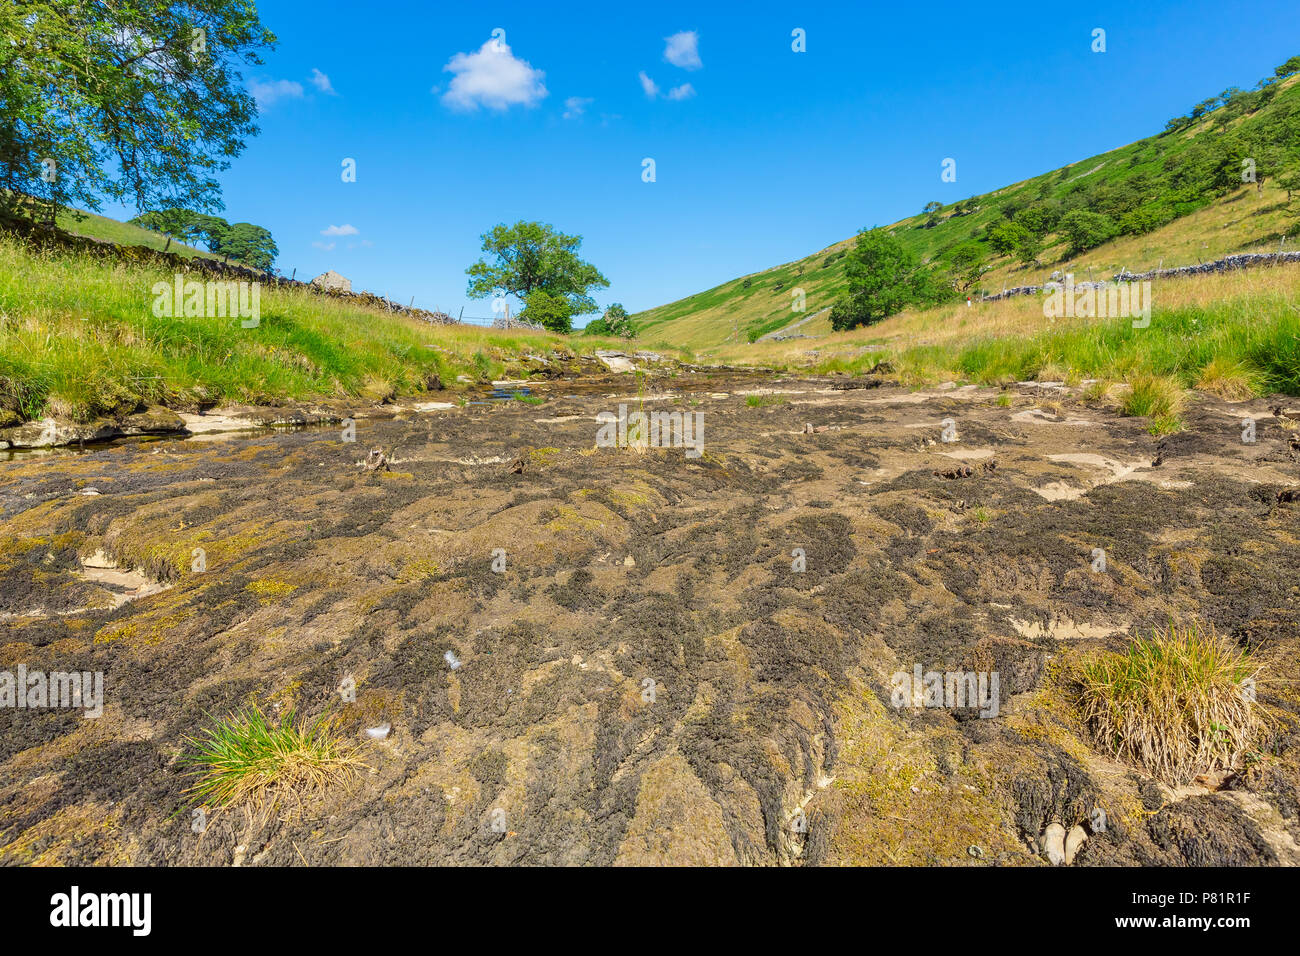 River Wharfe at Hubberholme, Near Kettlewell in the Yorkshire Dales, England UK, almost dried up due to continued heat wave and lack of rain. Stock Photo